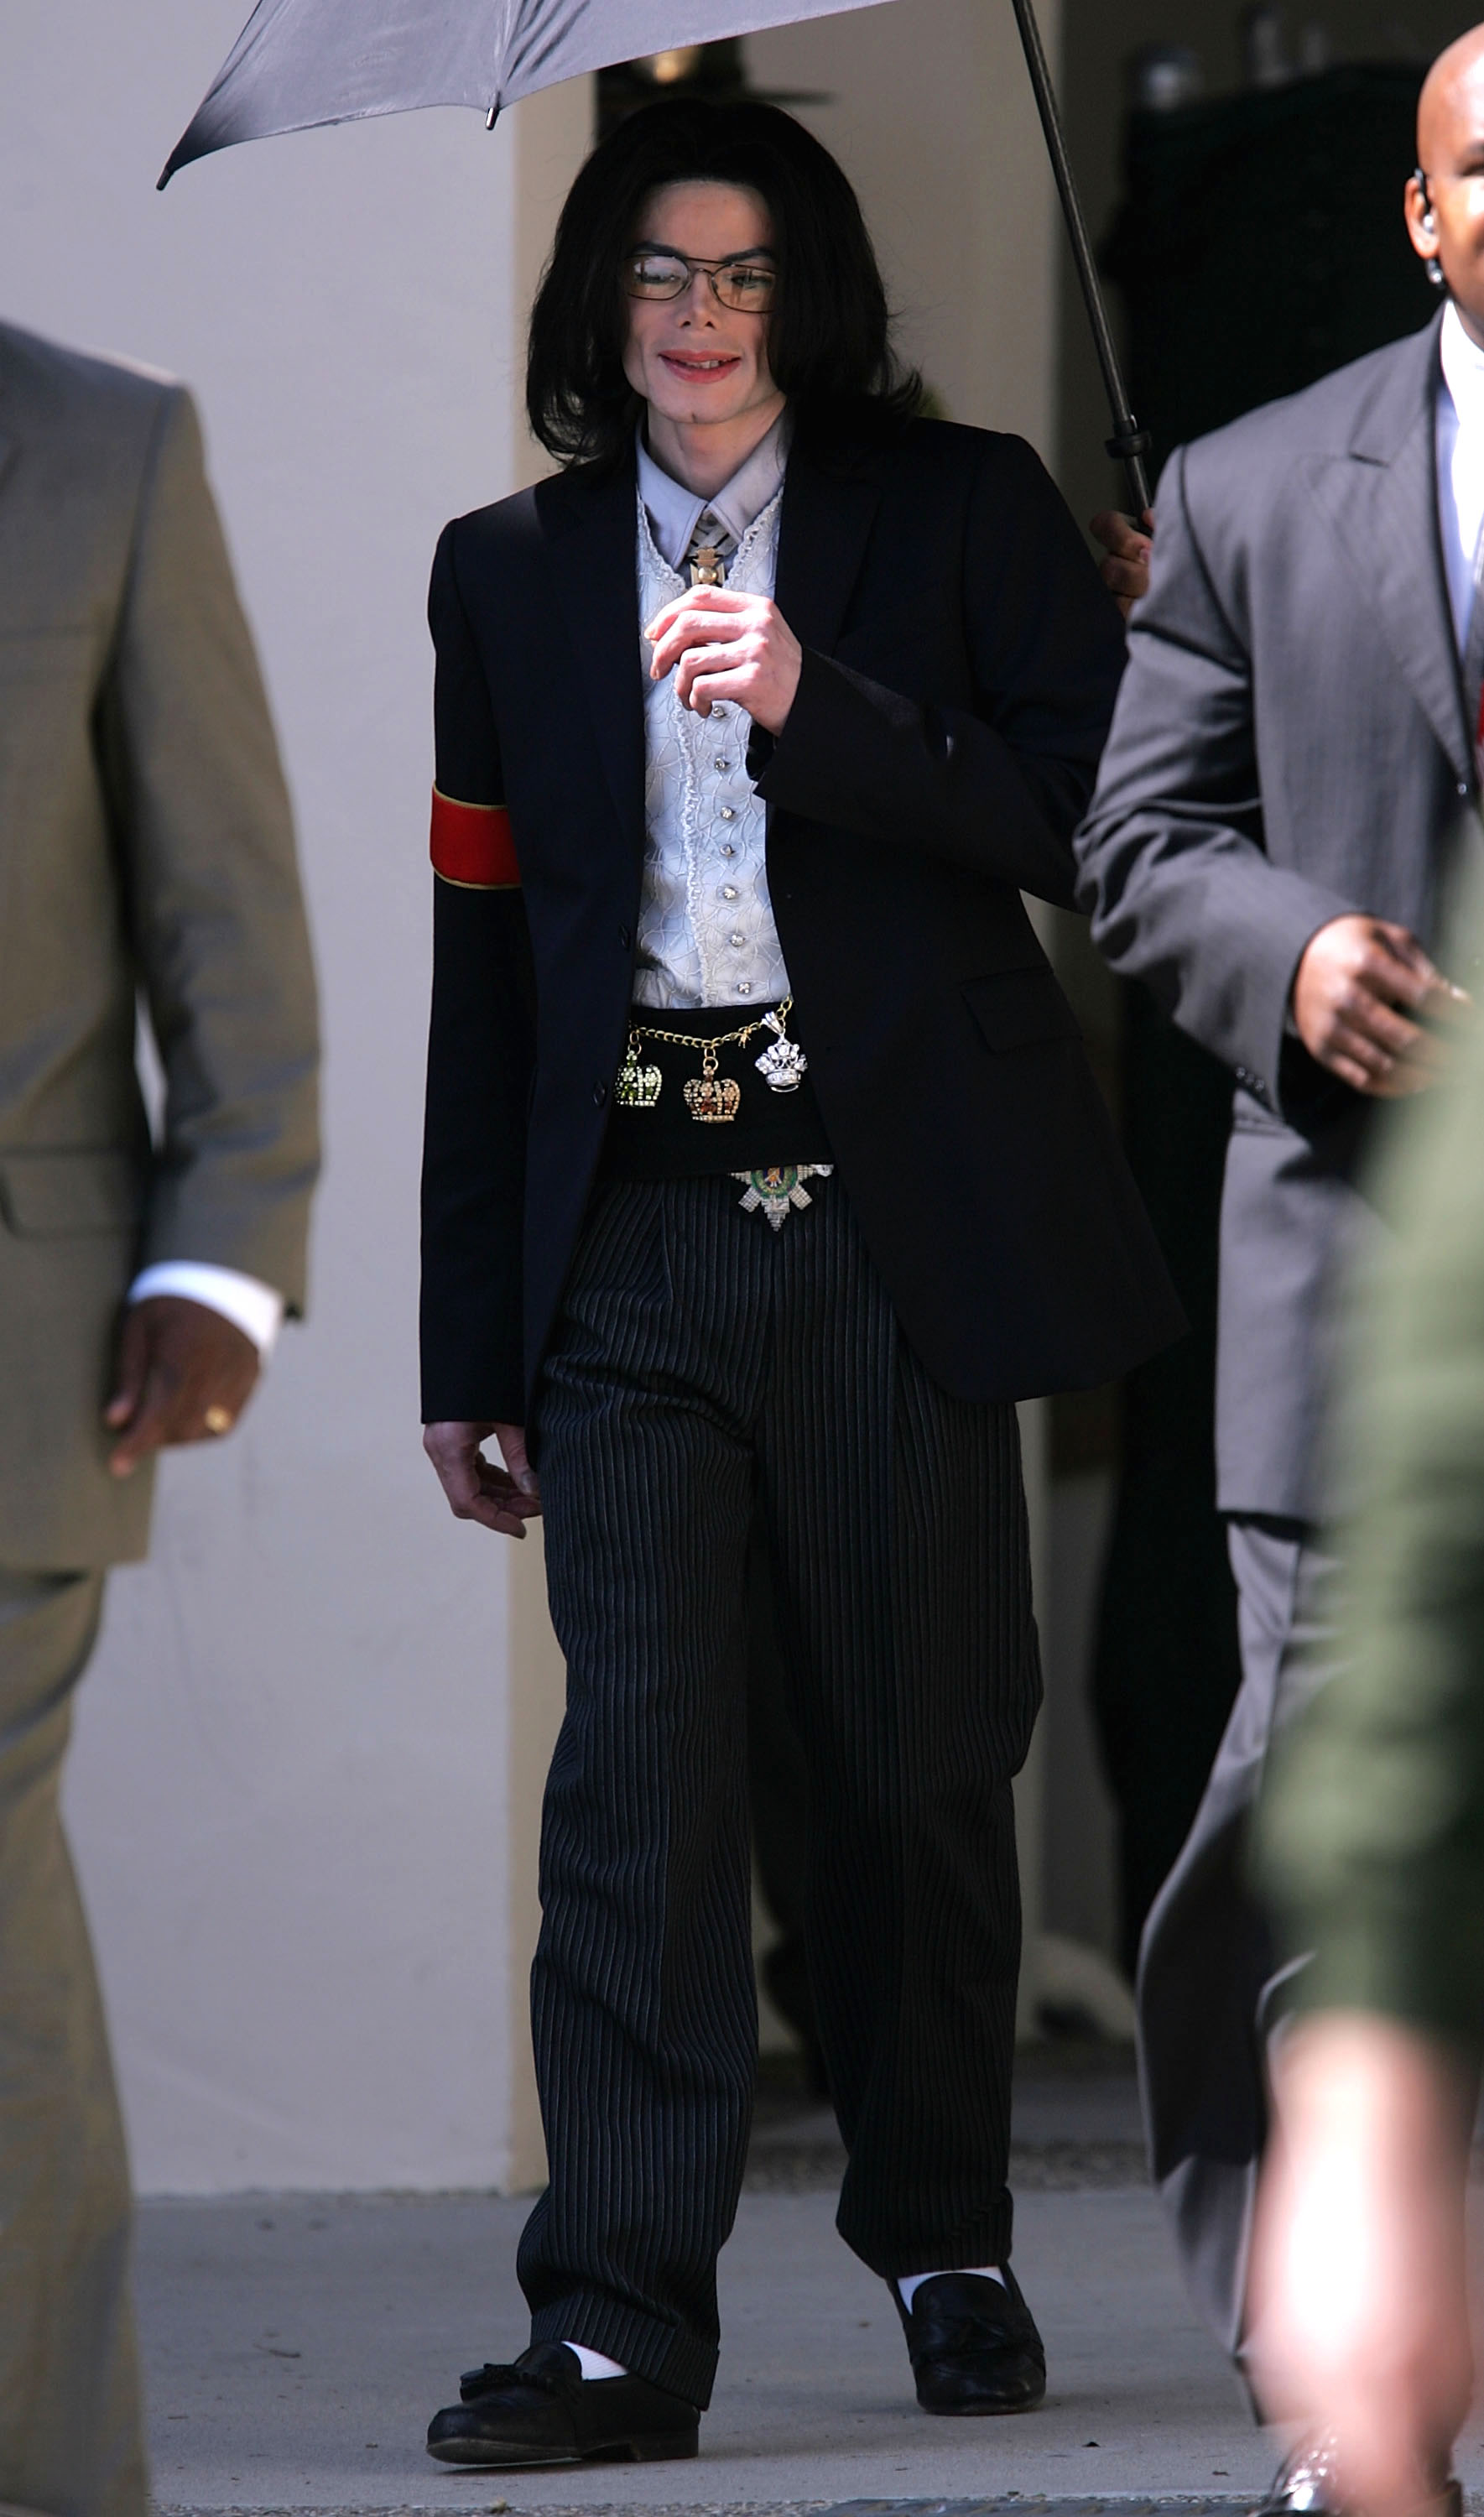 Singer Michael Jackson leaves the Santa Barbara County Courthouse after pre-trial motions on February 25, 2005 in Santa Maria, California. (Photo by Mark Mainz/Getty Images)